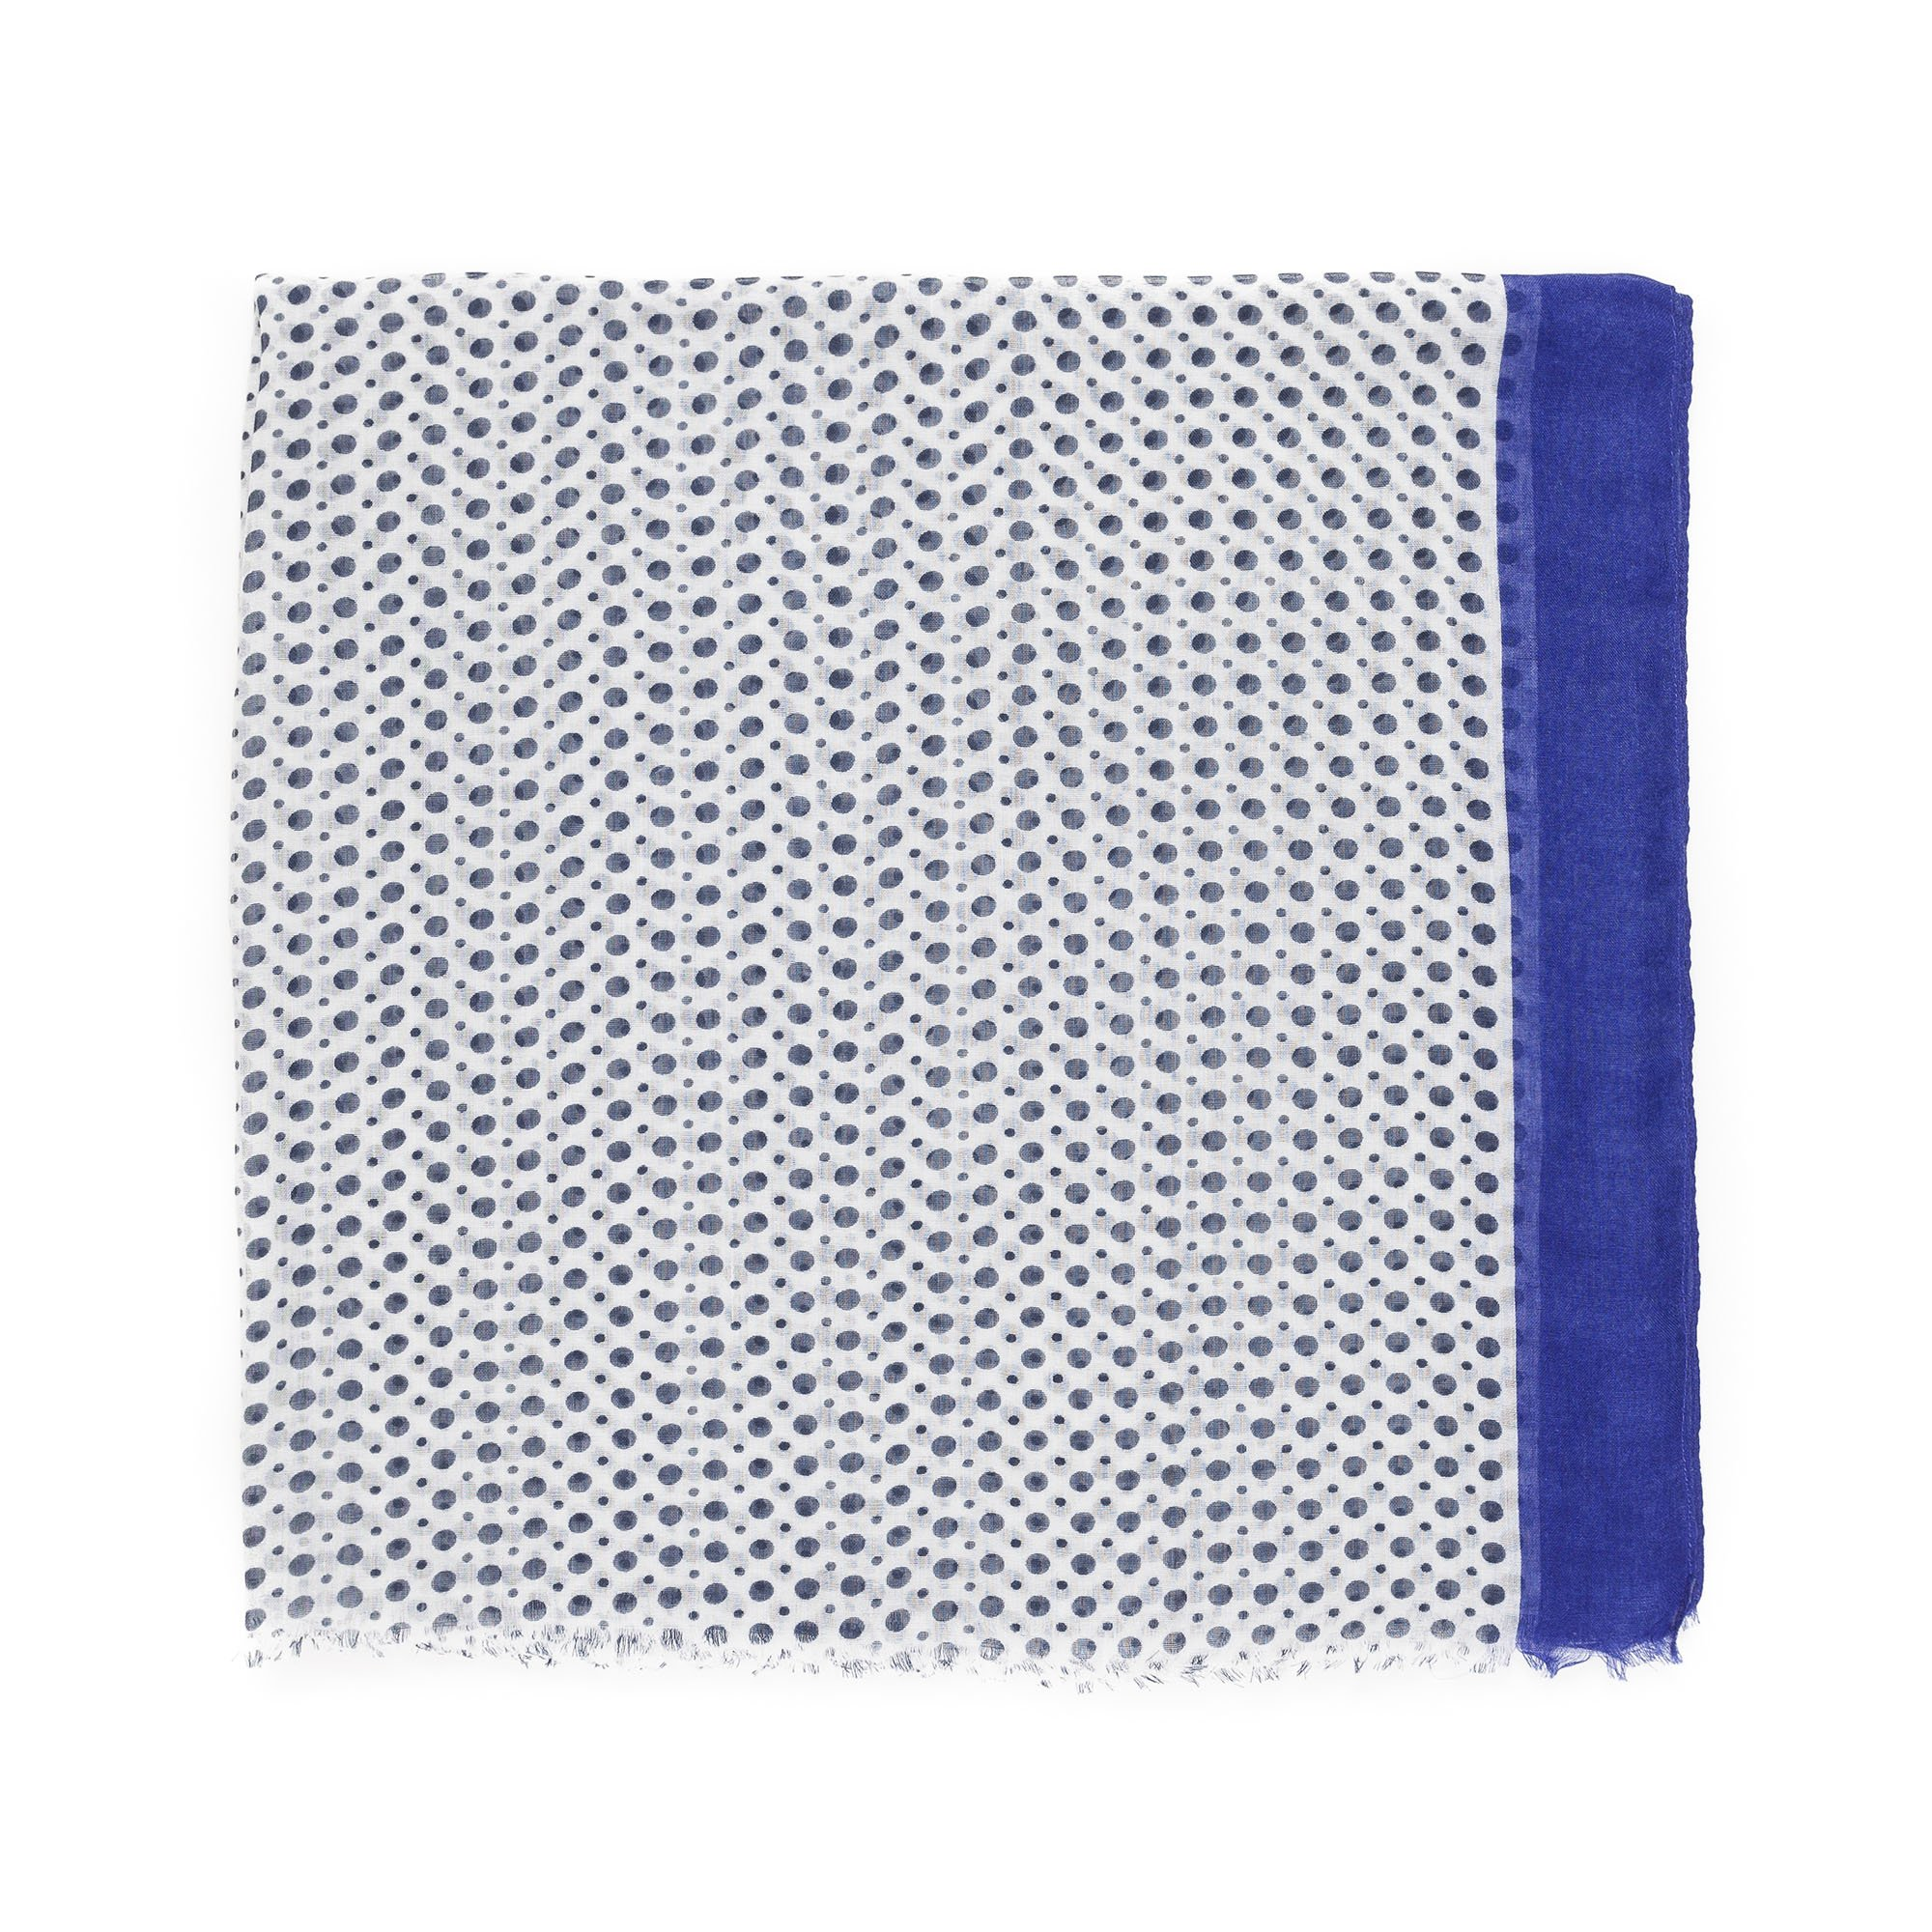 Scarves for Women by MIMOSITO Fashion Lightweight Elegant Geometric Patterned Wrap (Polka Dot-Blue) by MIMOSITO (Image #2)